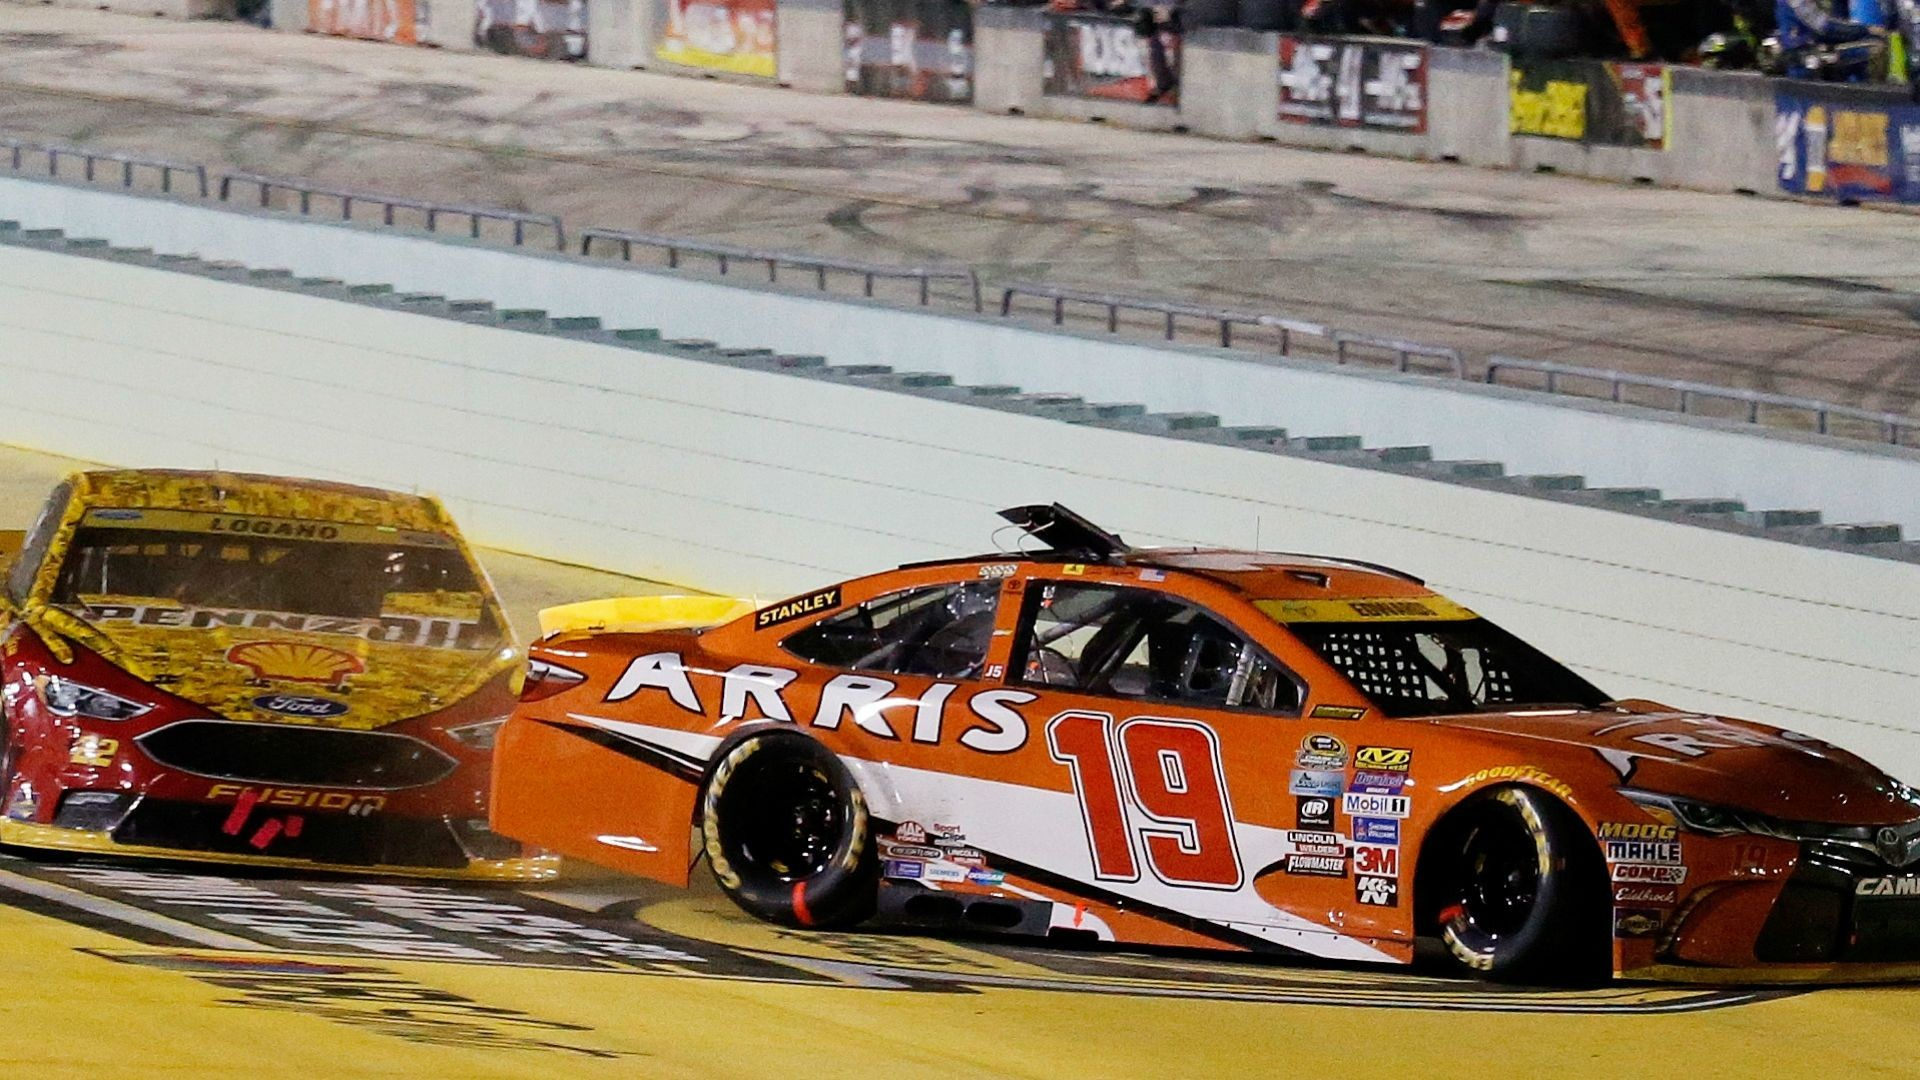 Res: 1920x1080, NASCAR championship: Carl Edwards, Joey Logano explain their sides of fiery  wreck